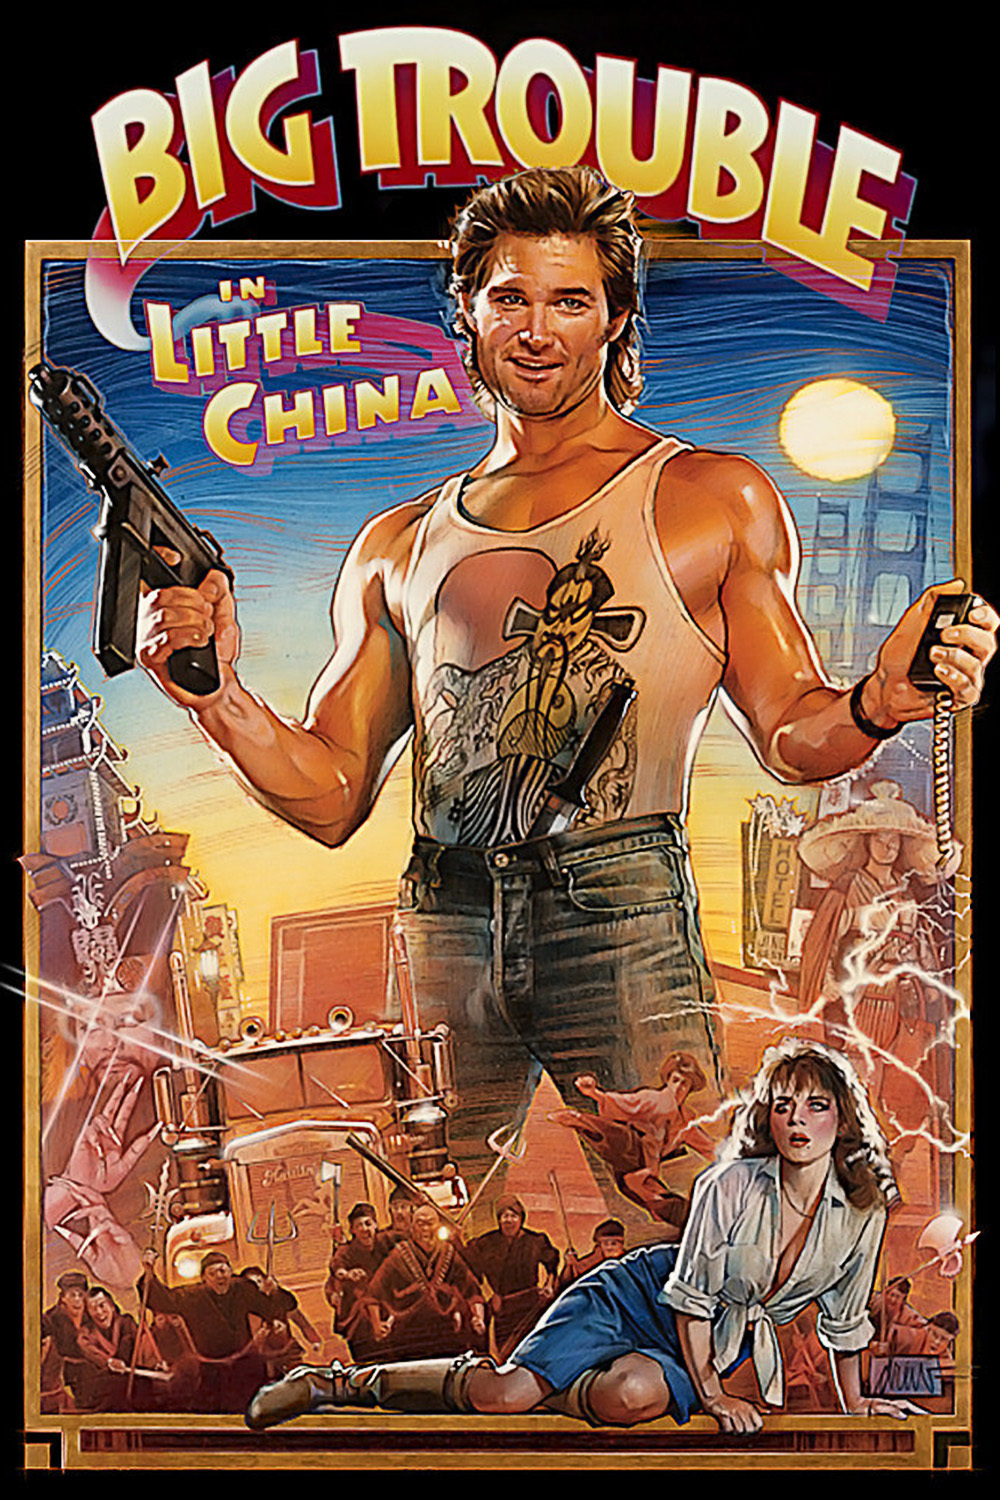 Big Trouble In Little China: Quite entertaining if you take it for what it really is…a comedy.